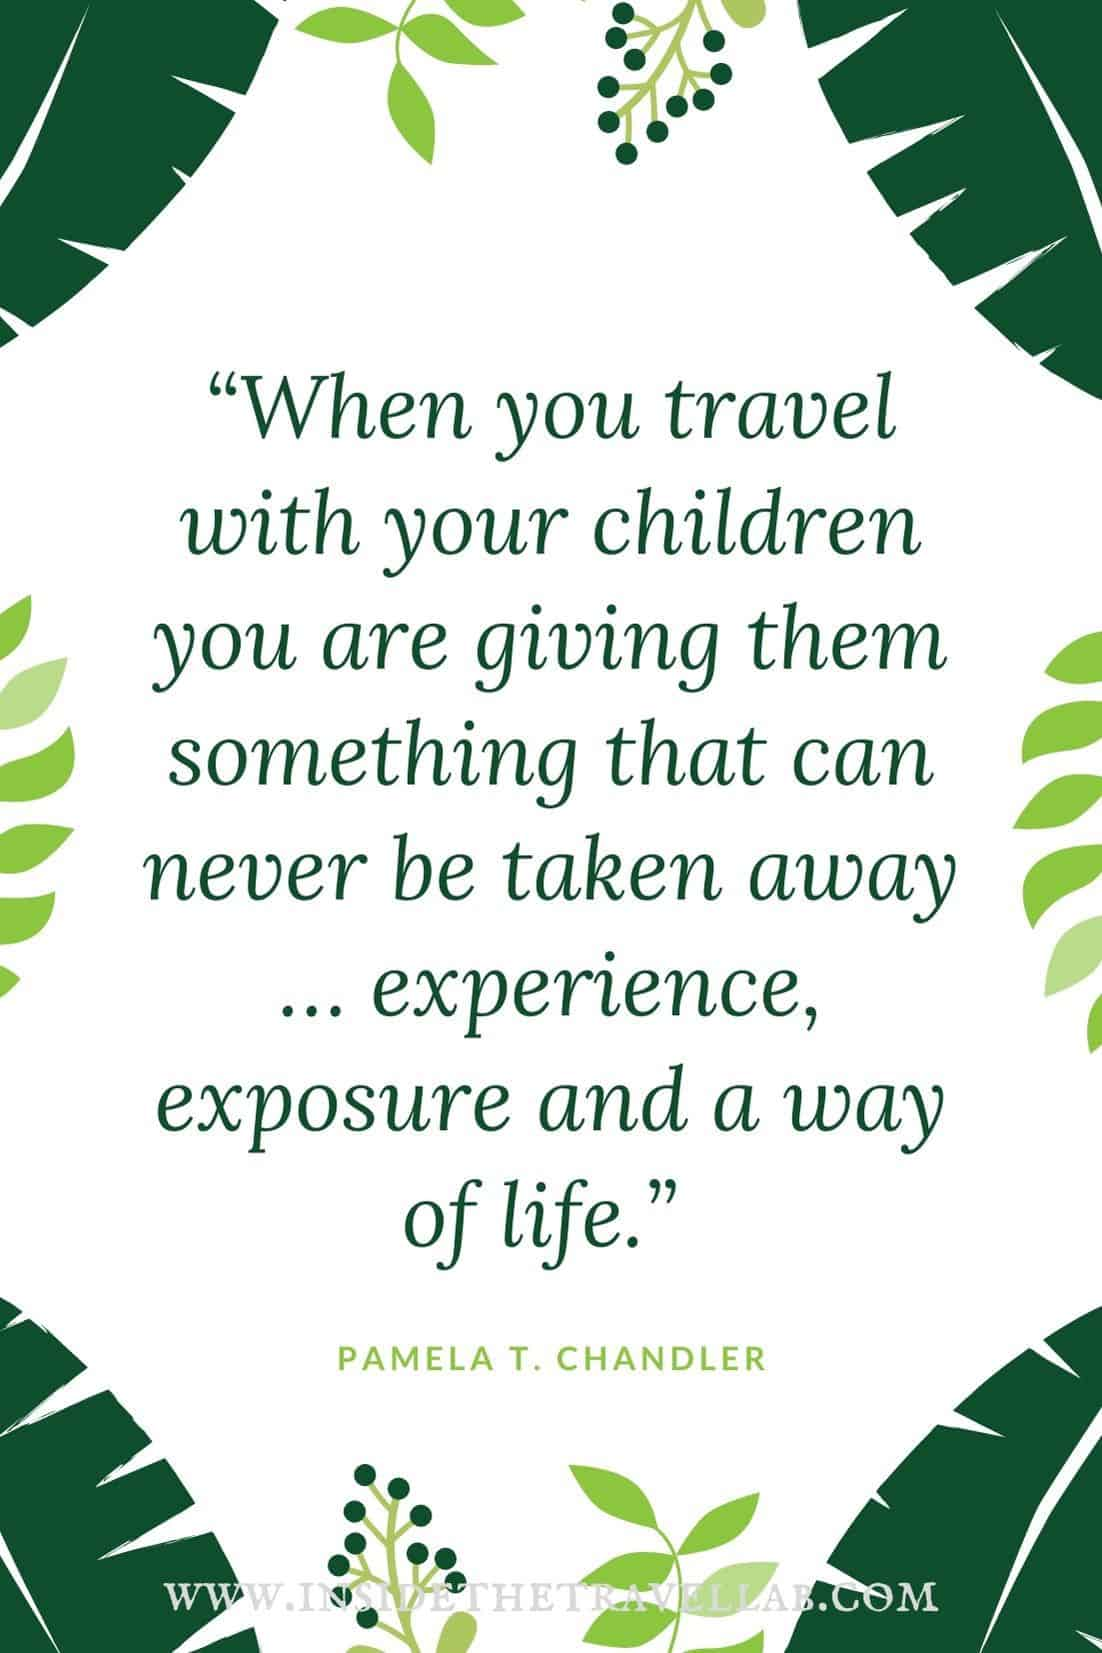 When you travel with your children - family travel quote